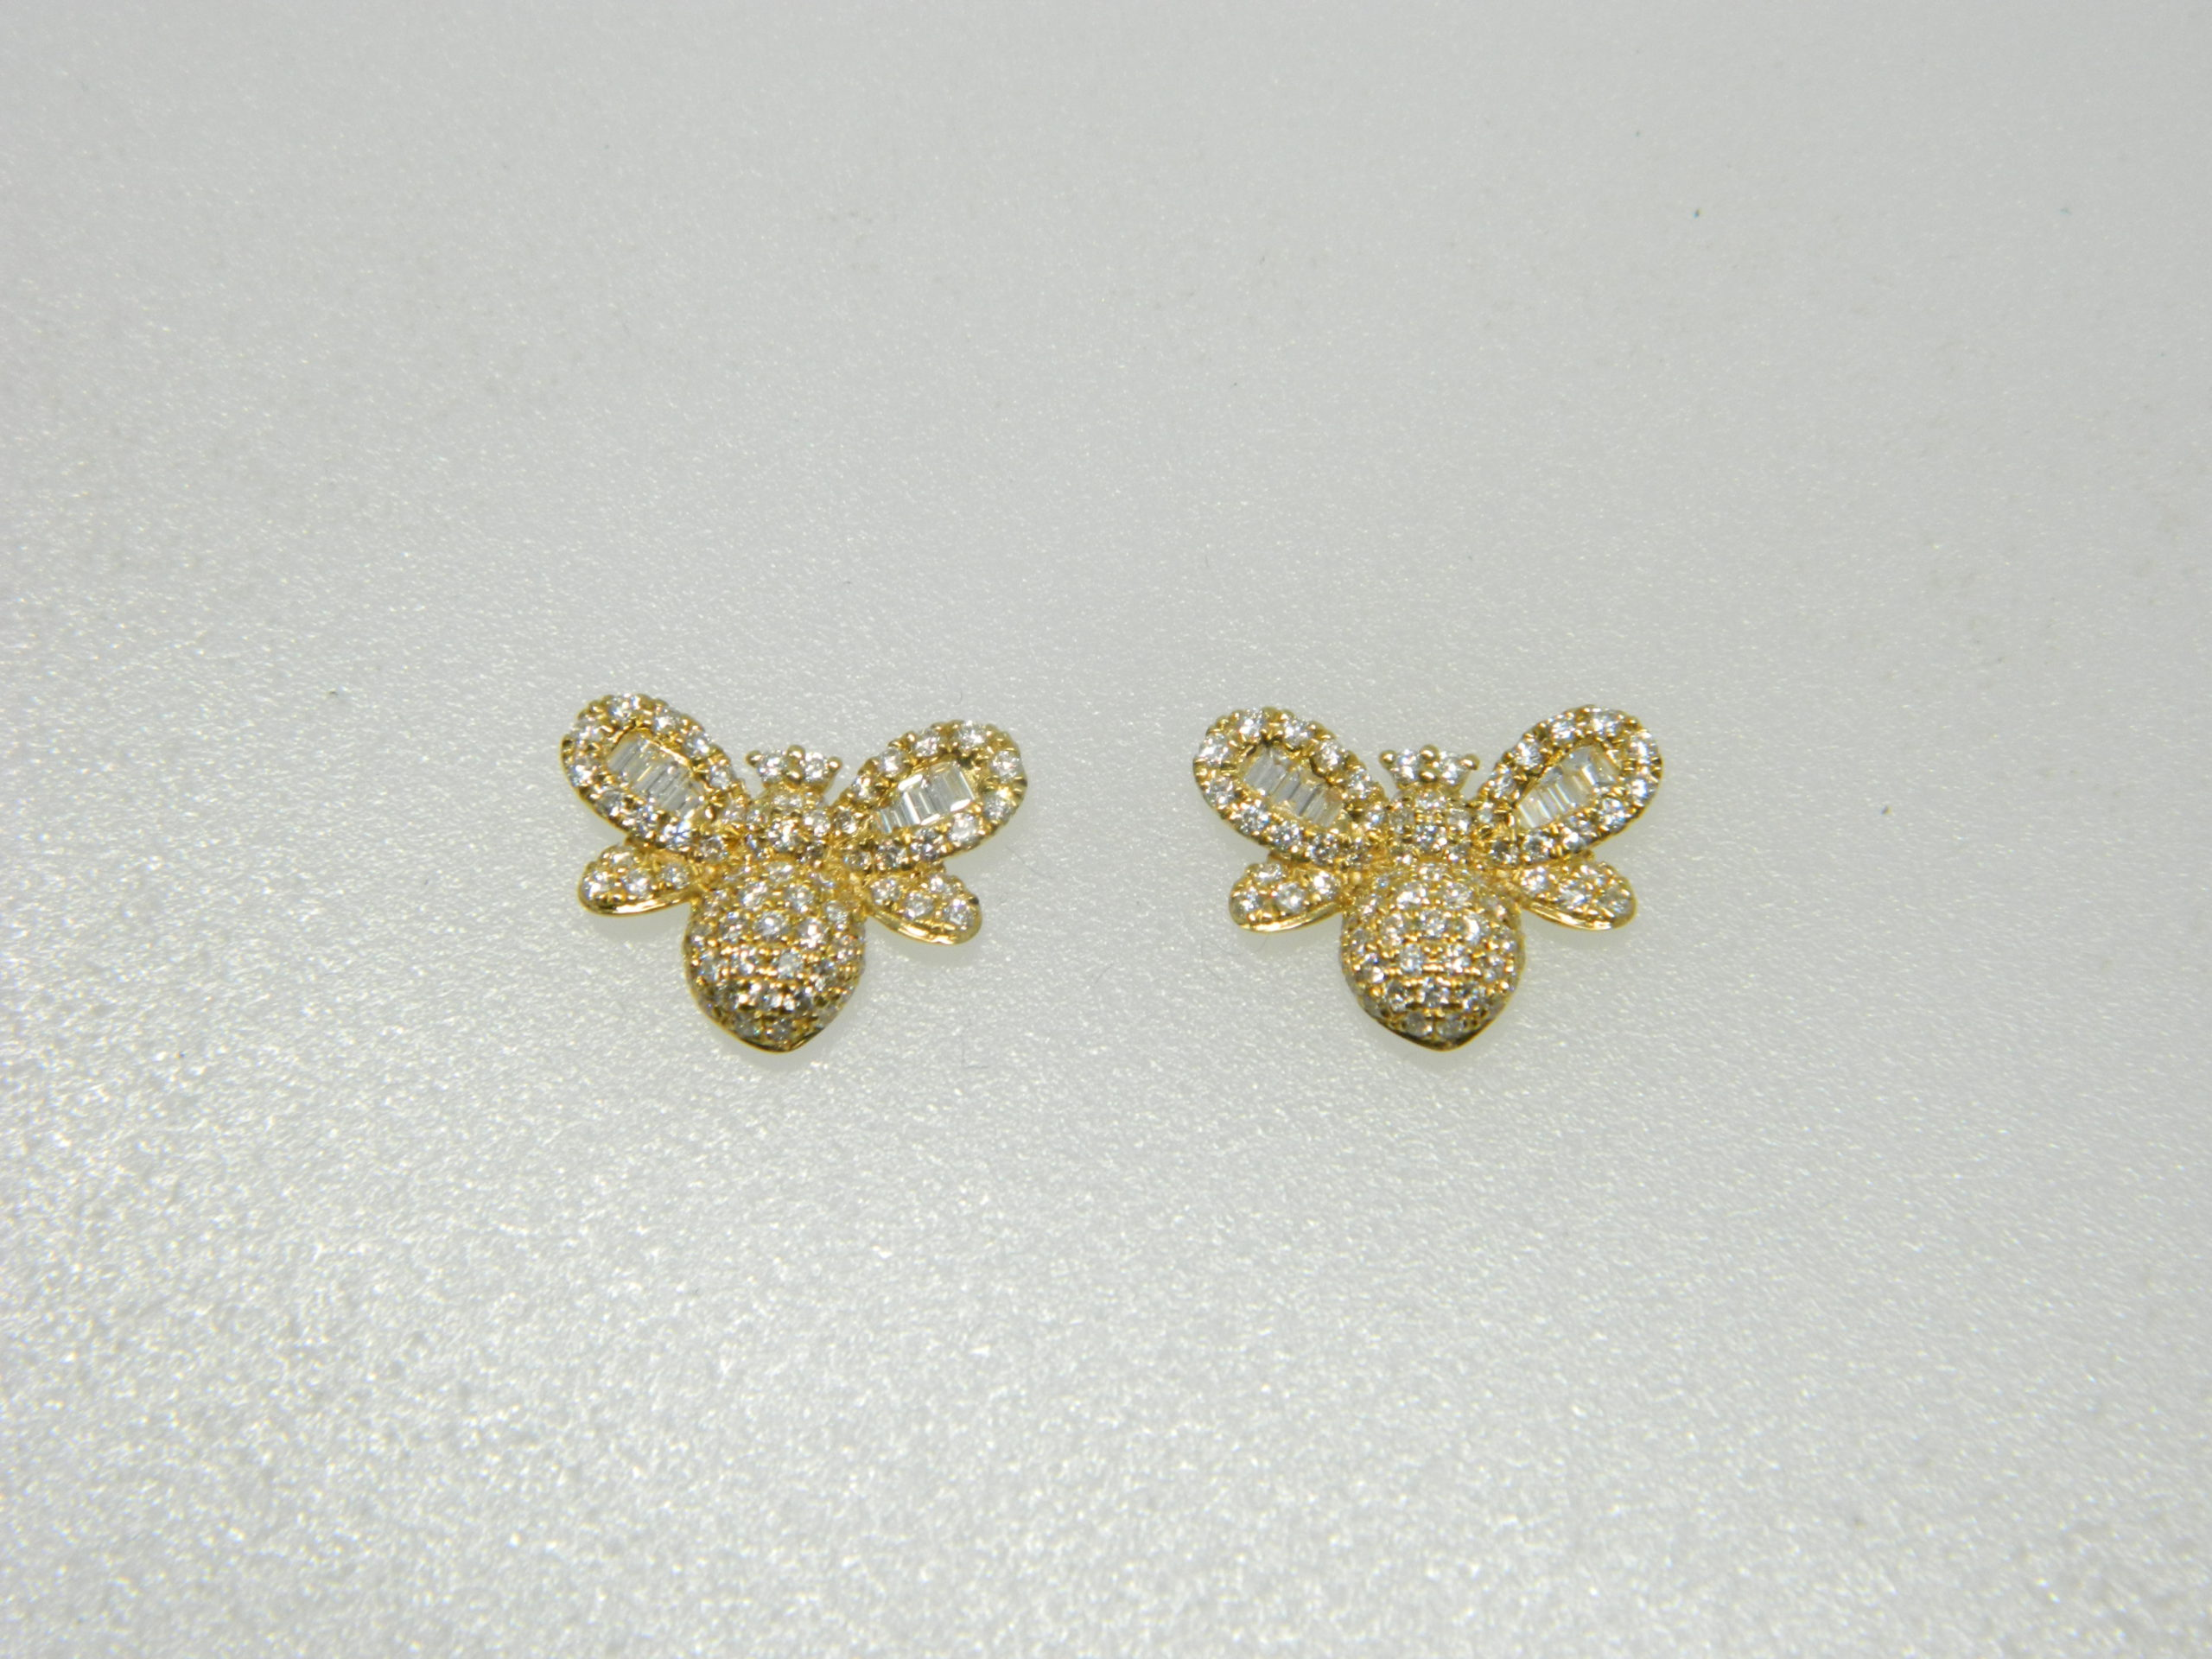 18 Karat Yellow Gold Stud Mounted Bee Earrings with 12 Baguette Cut Diamonds weighing 0.13cts & 142 Round Cut Diamonds weighing 0.52cts